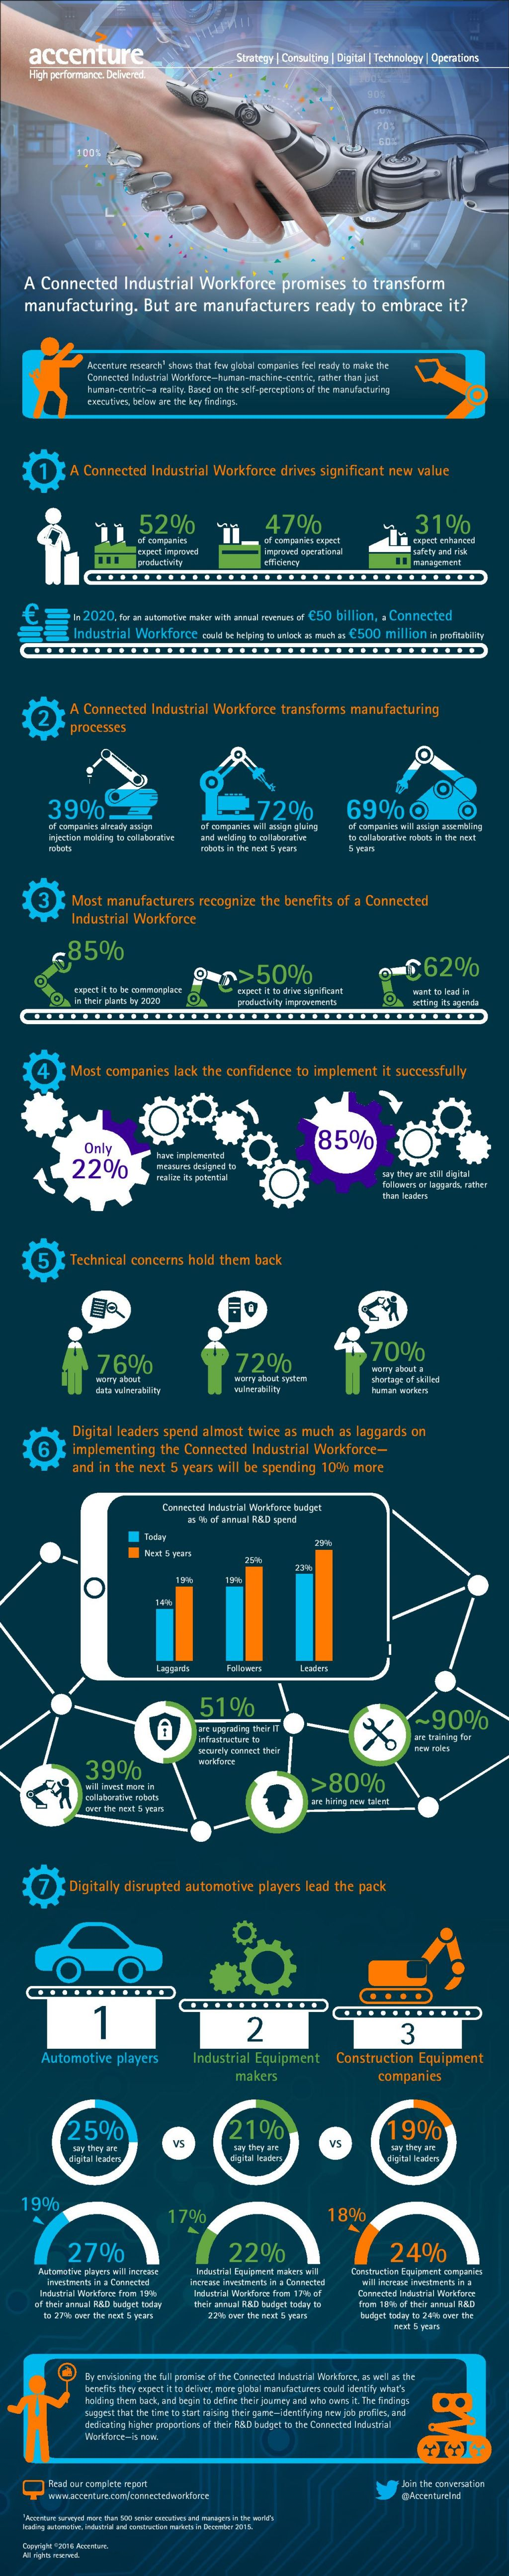 Accenture-Connected-Industrial-Workforce-Infographic-page-001